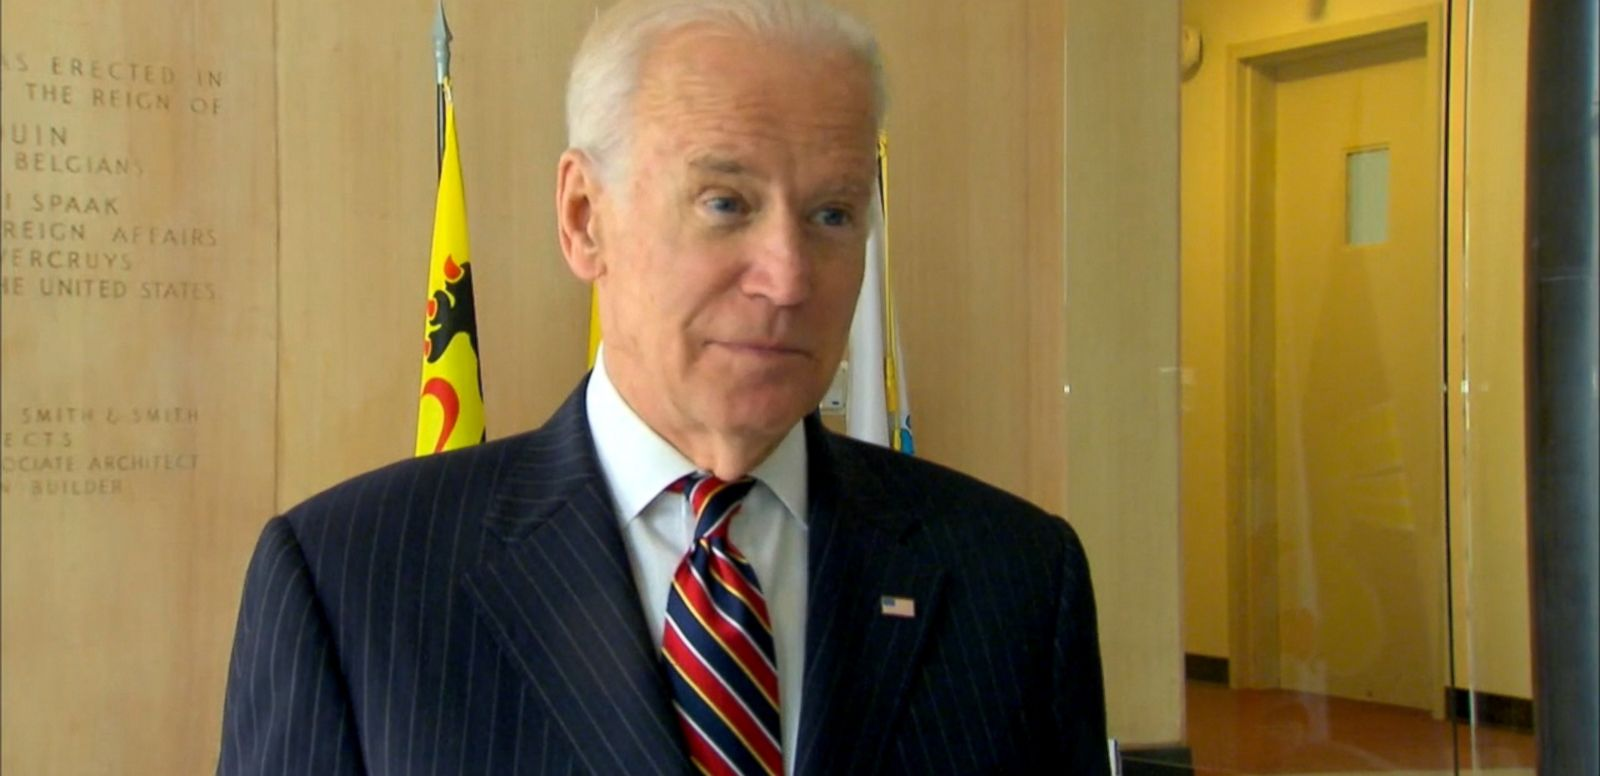 VIDEO: Vice President Joe Biden, joined by his wife Dr. Jill Biden, stopped by the Belgium Embassy in Washington, D.C. this morning to sign the condolence book for the victims of yesterdays attacks in Brussels.